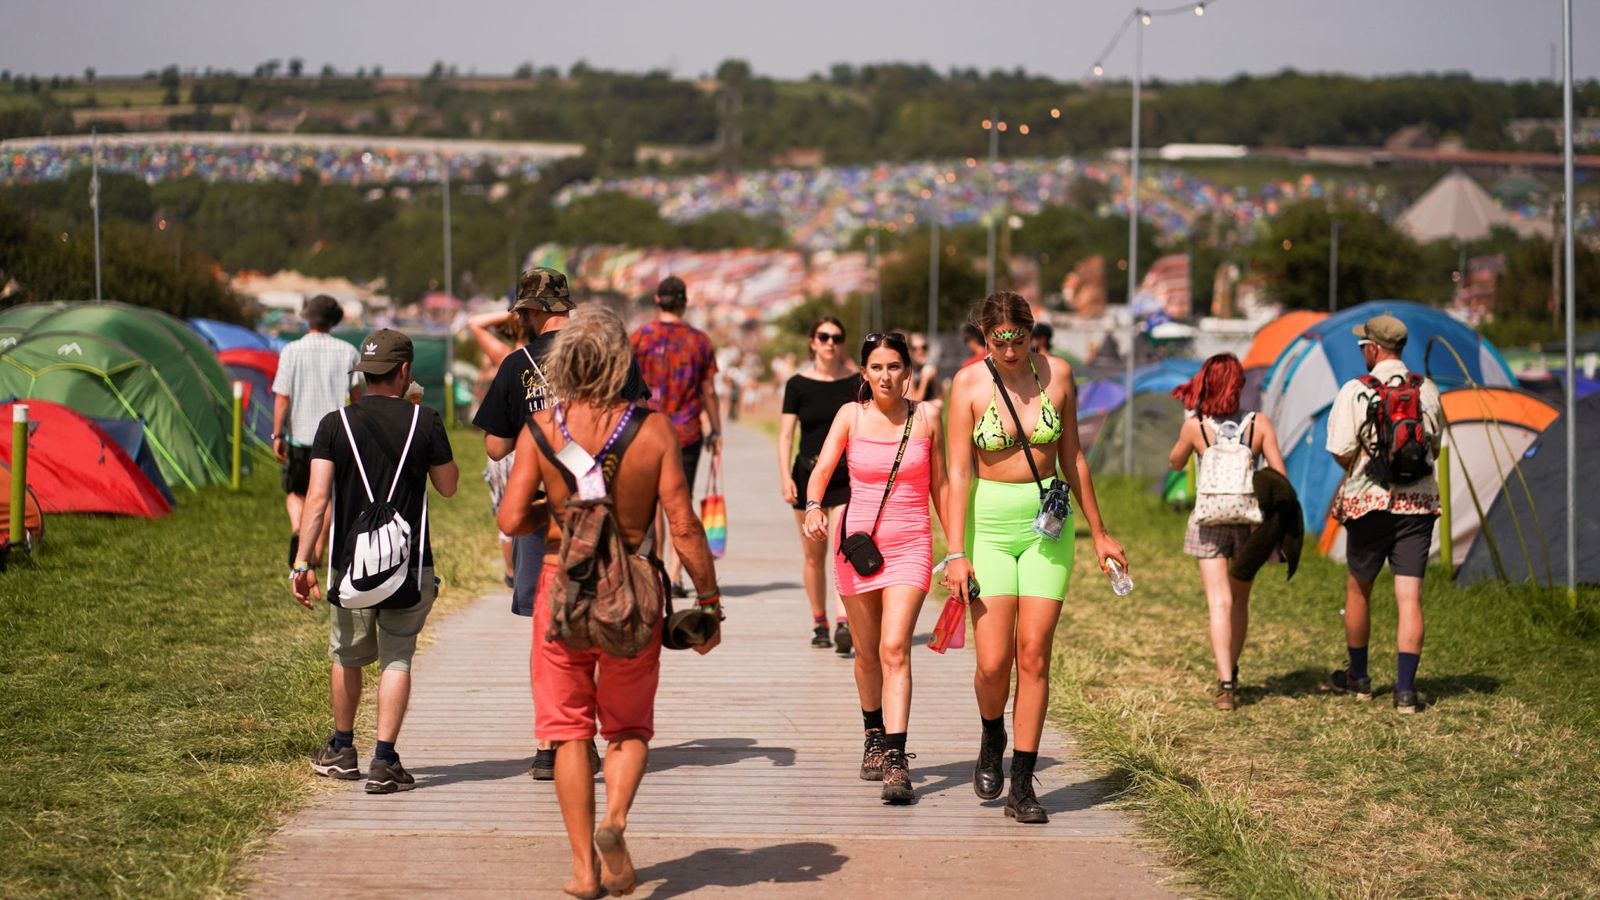 Festival goers walk through a campsite during hot weather at Glastonbury Festival in Somerset